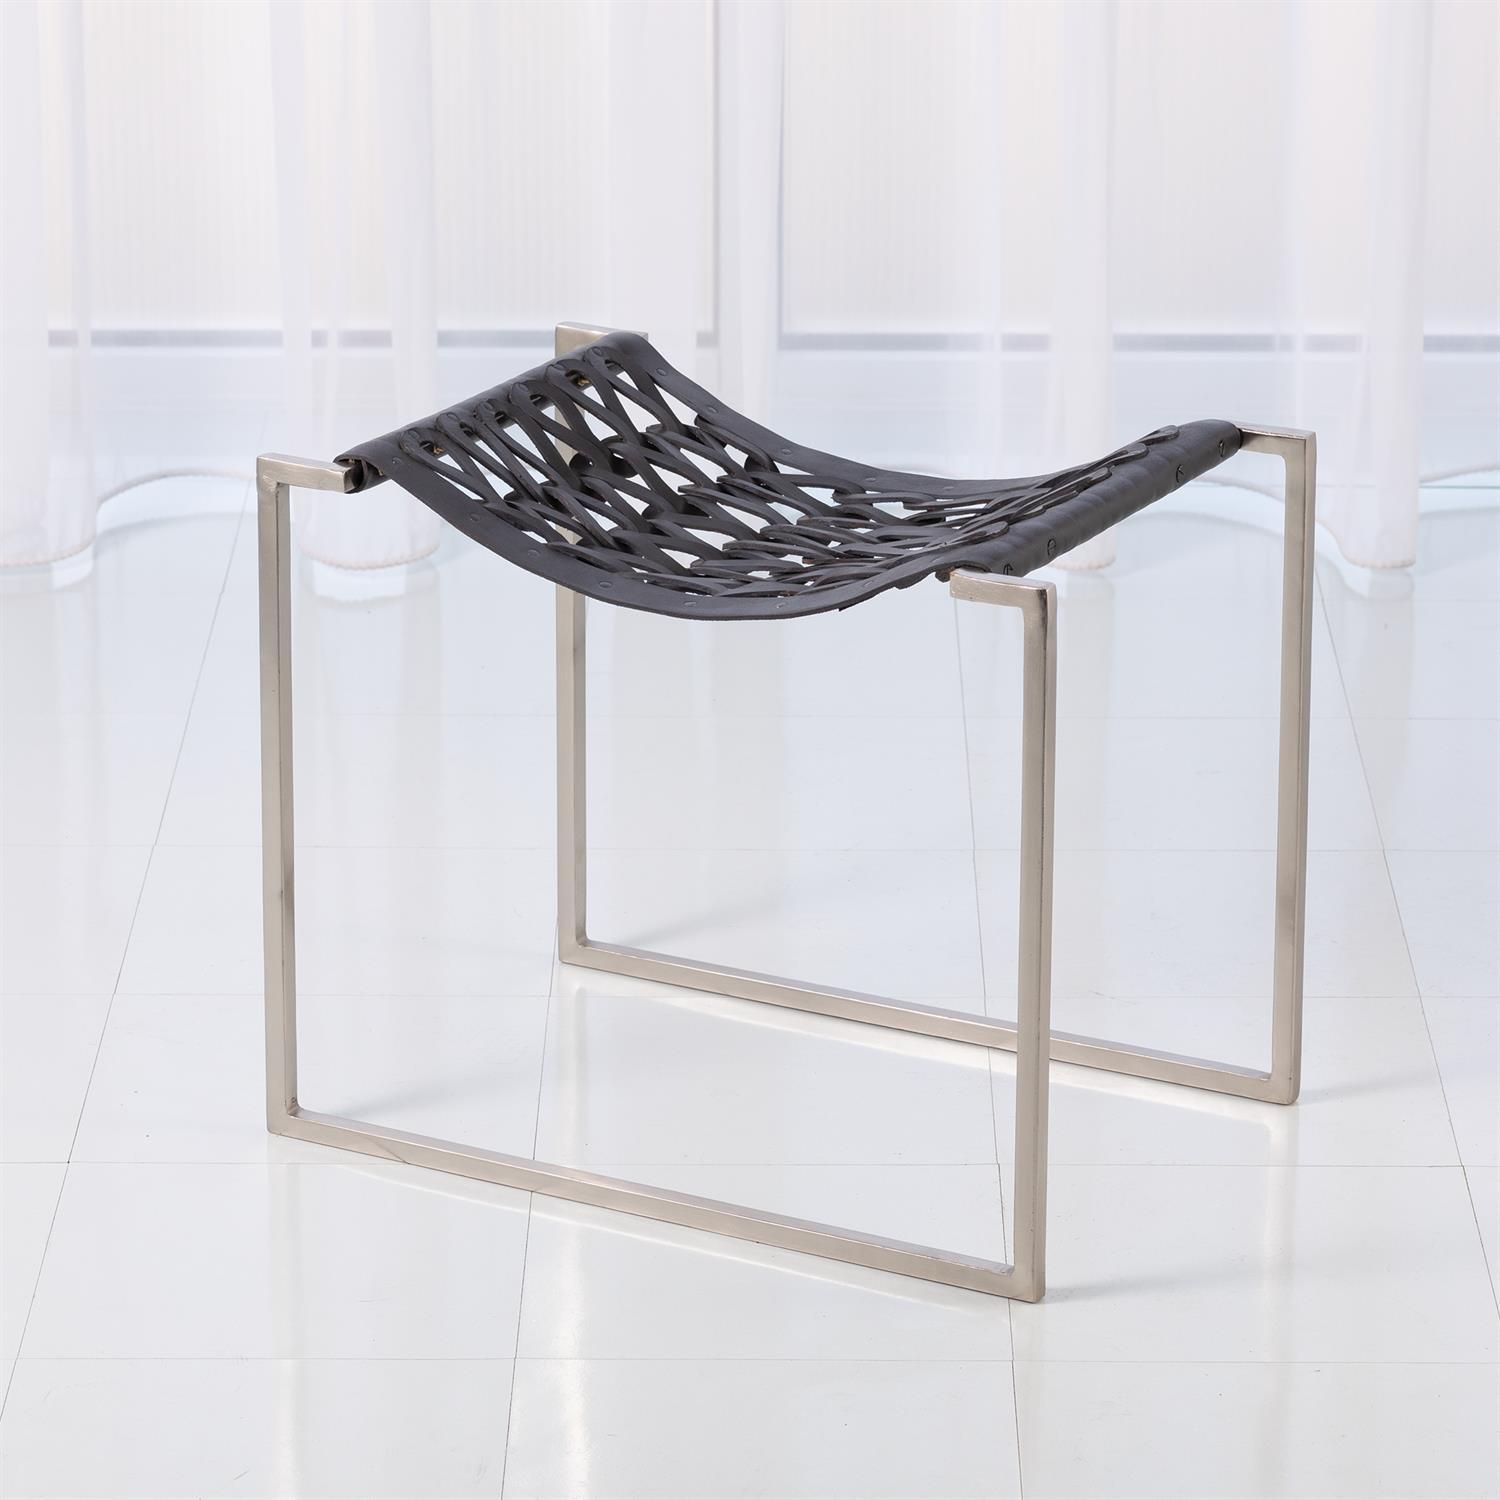 Global Views Global Views Knit & Pearl Stool - Nickel & Grey JG9.90001